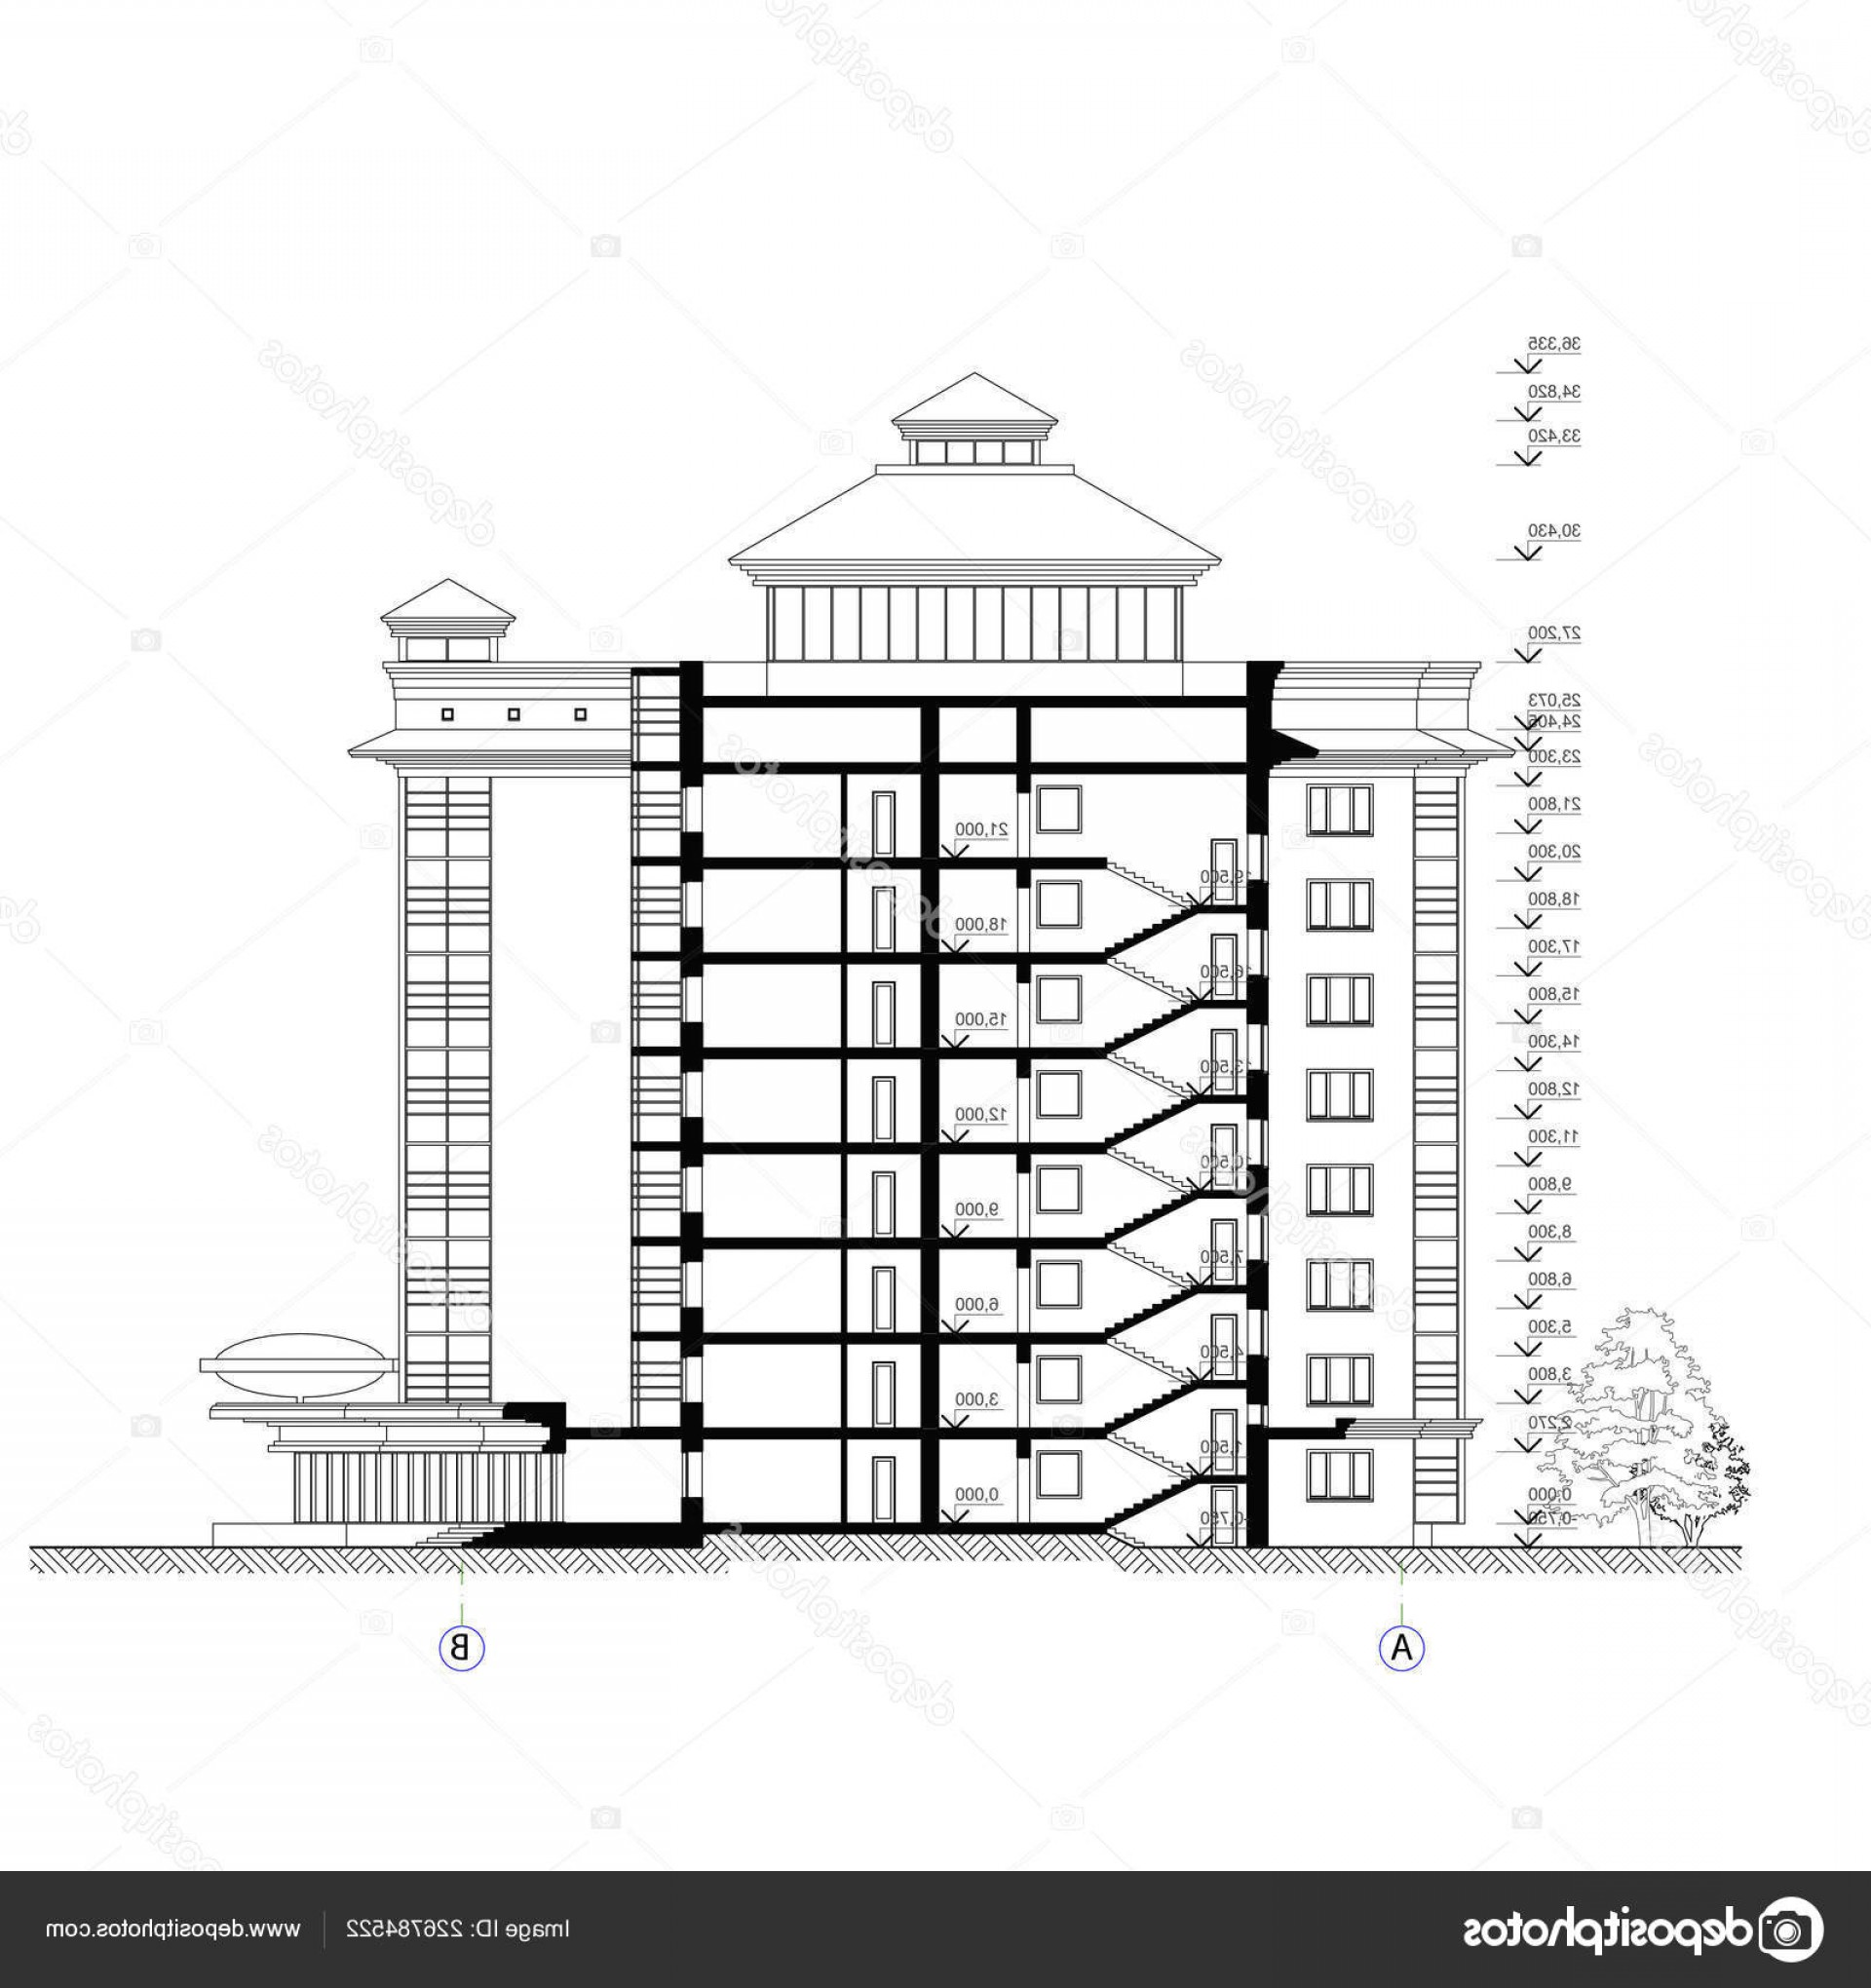 Residential Blueprint Vector Black: Stock Illustration Multistory Building Section Detailed Architectural